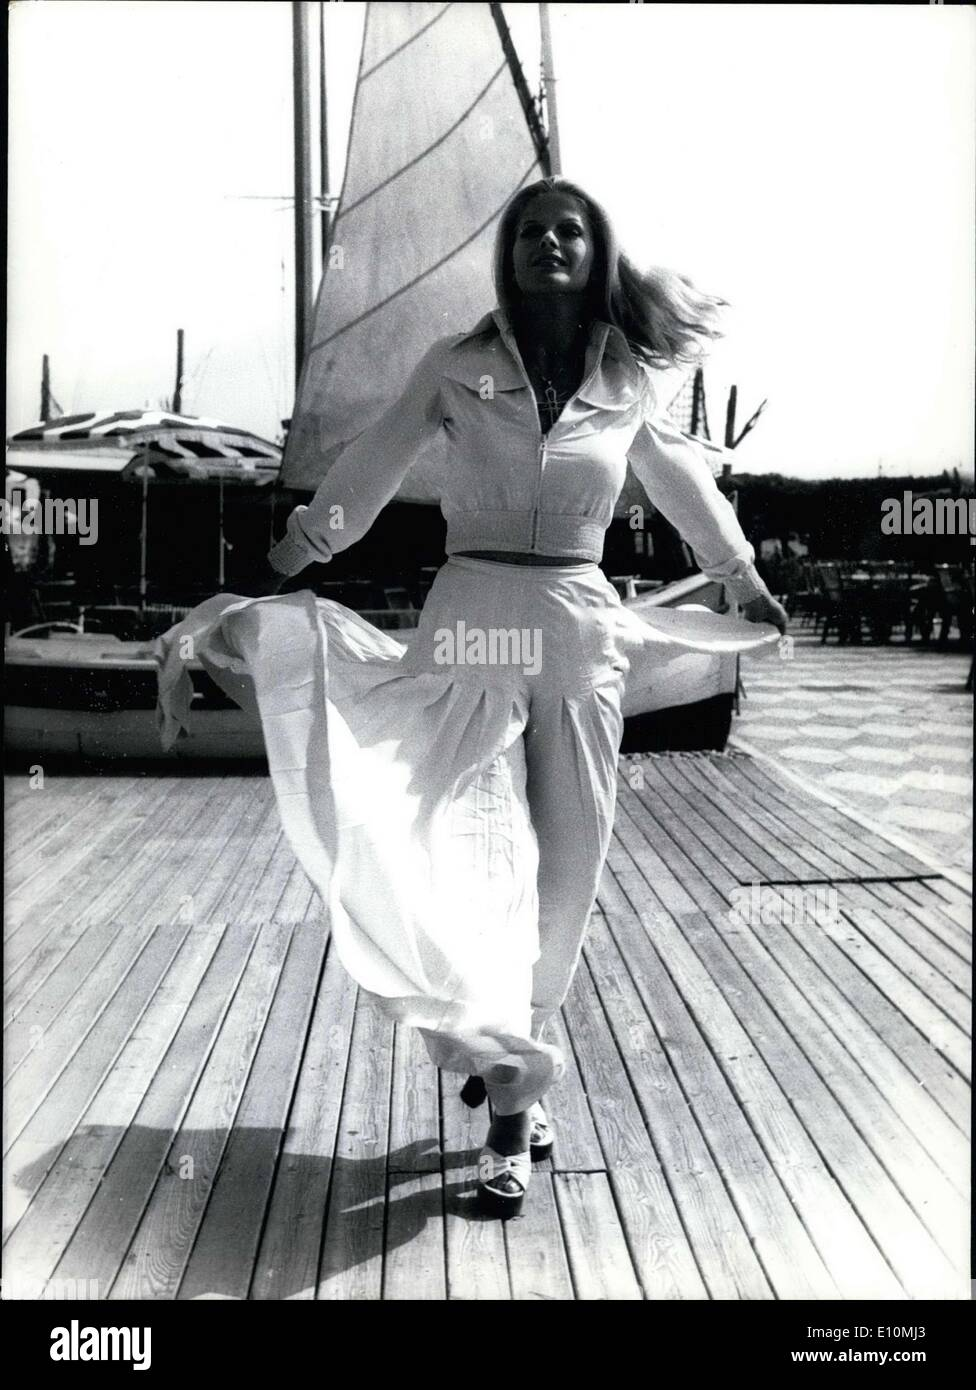 Jul. 16, 1973 - Karin Schubert, the star of Pierre-Alain Jolivet's ''La Punition,'' spent a few days on the French Riviera. Here she is walking on the ''Siesta'' in Antibes. - Stock Image